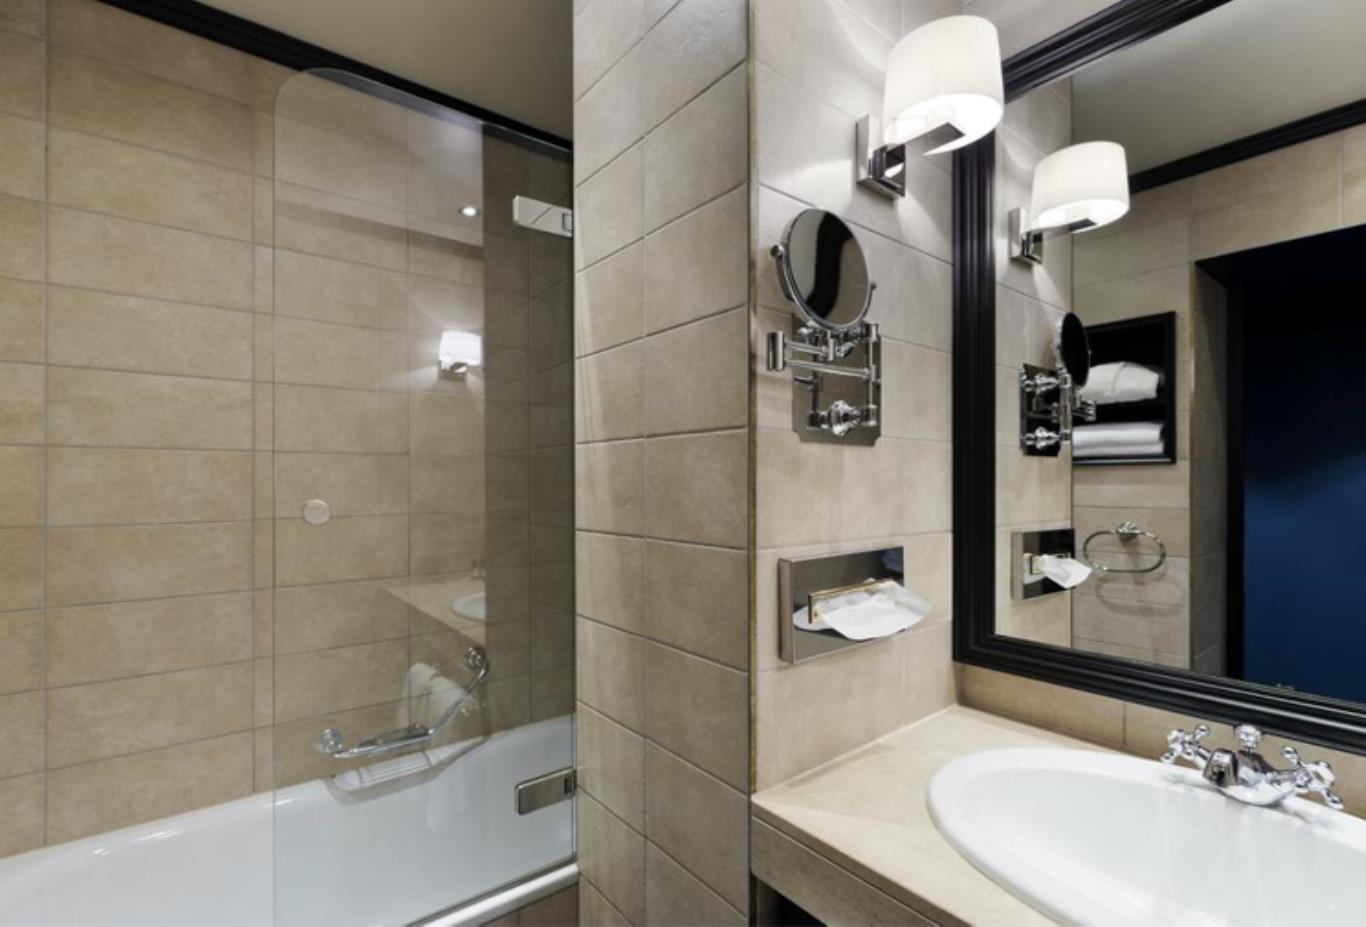 Signature Double Room bathroom